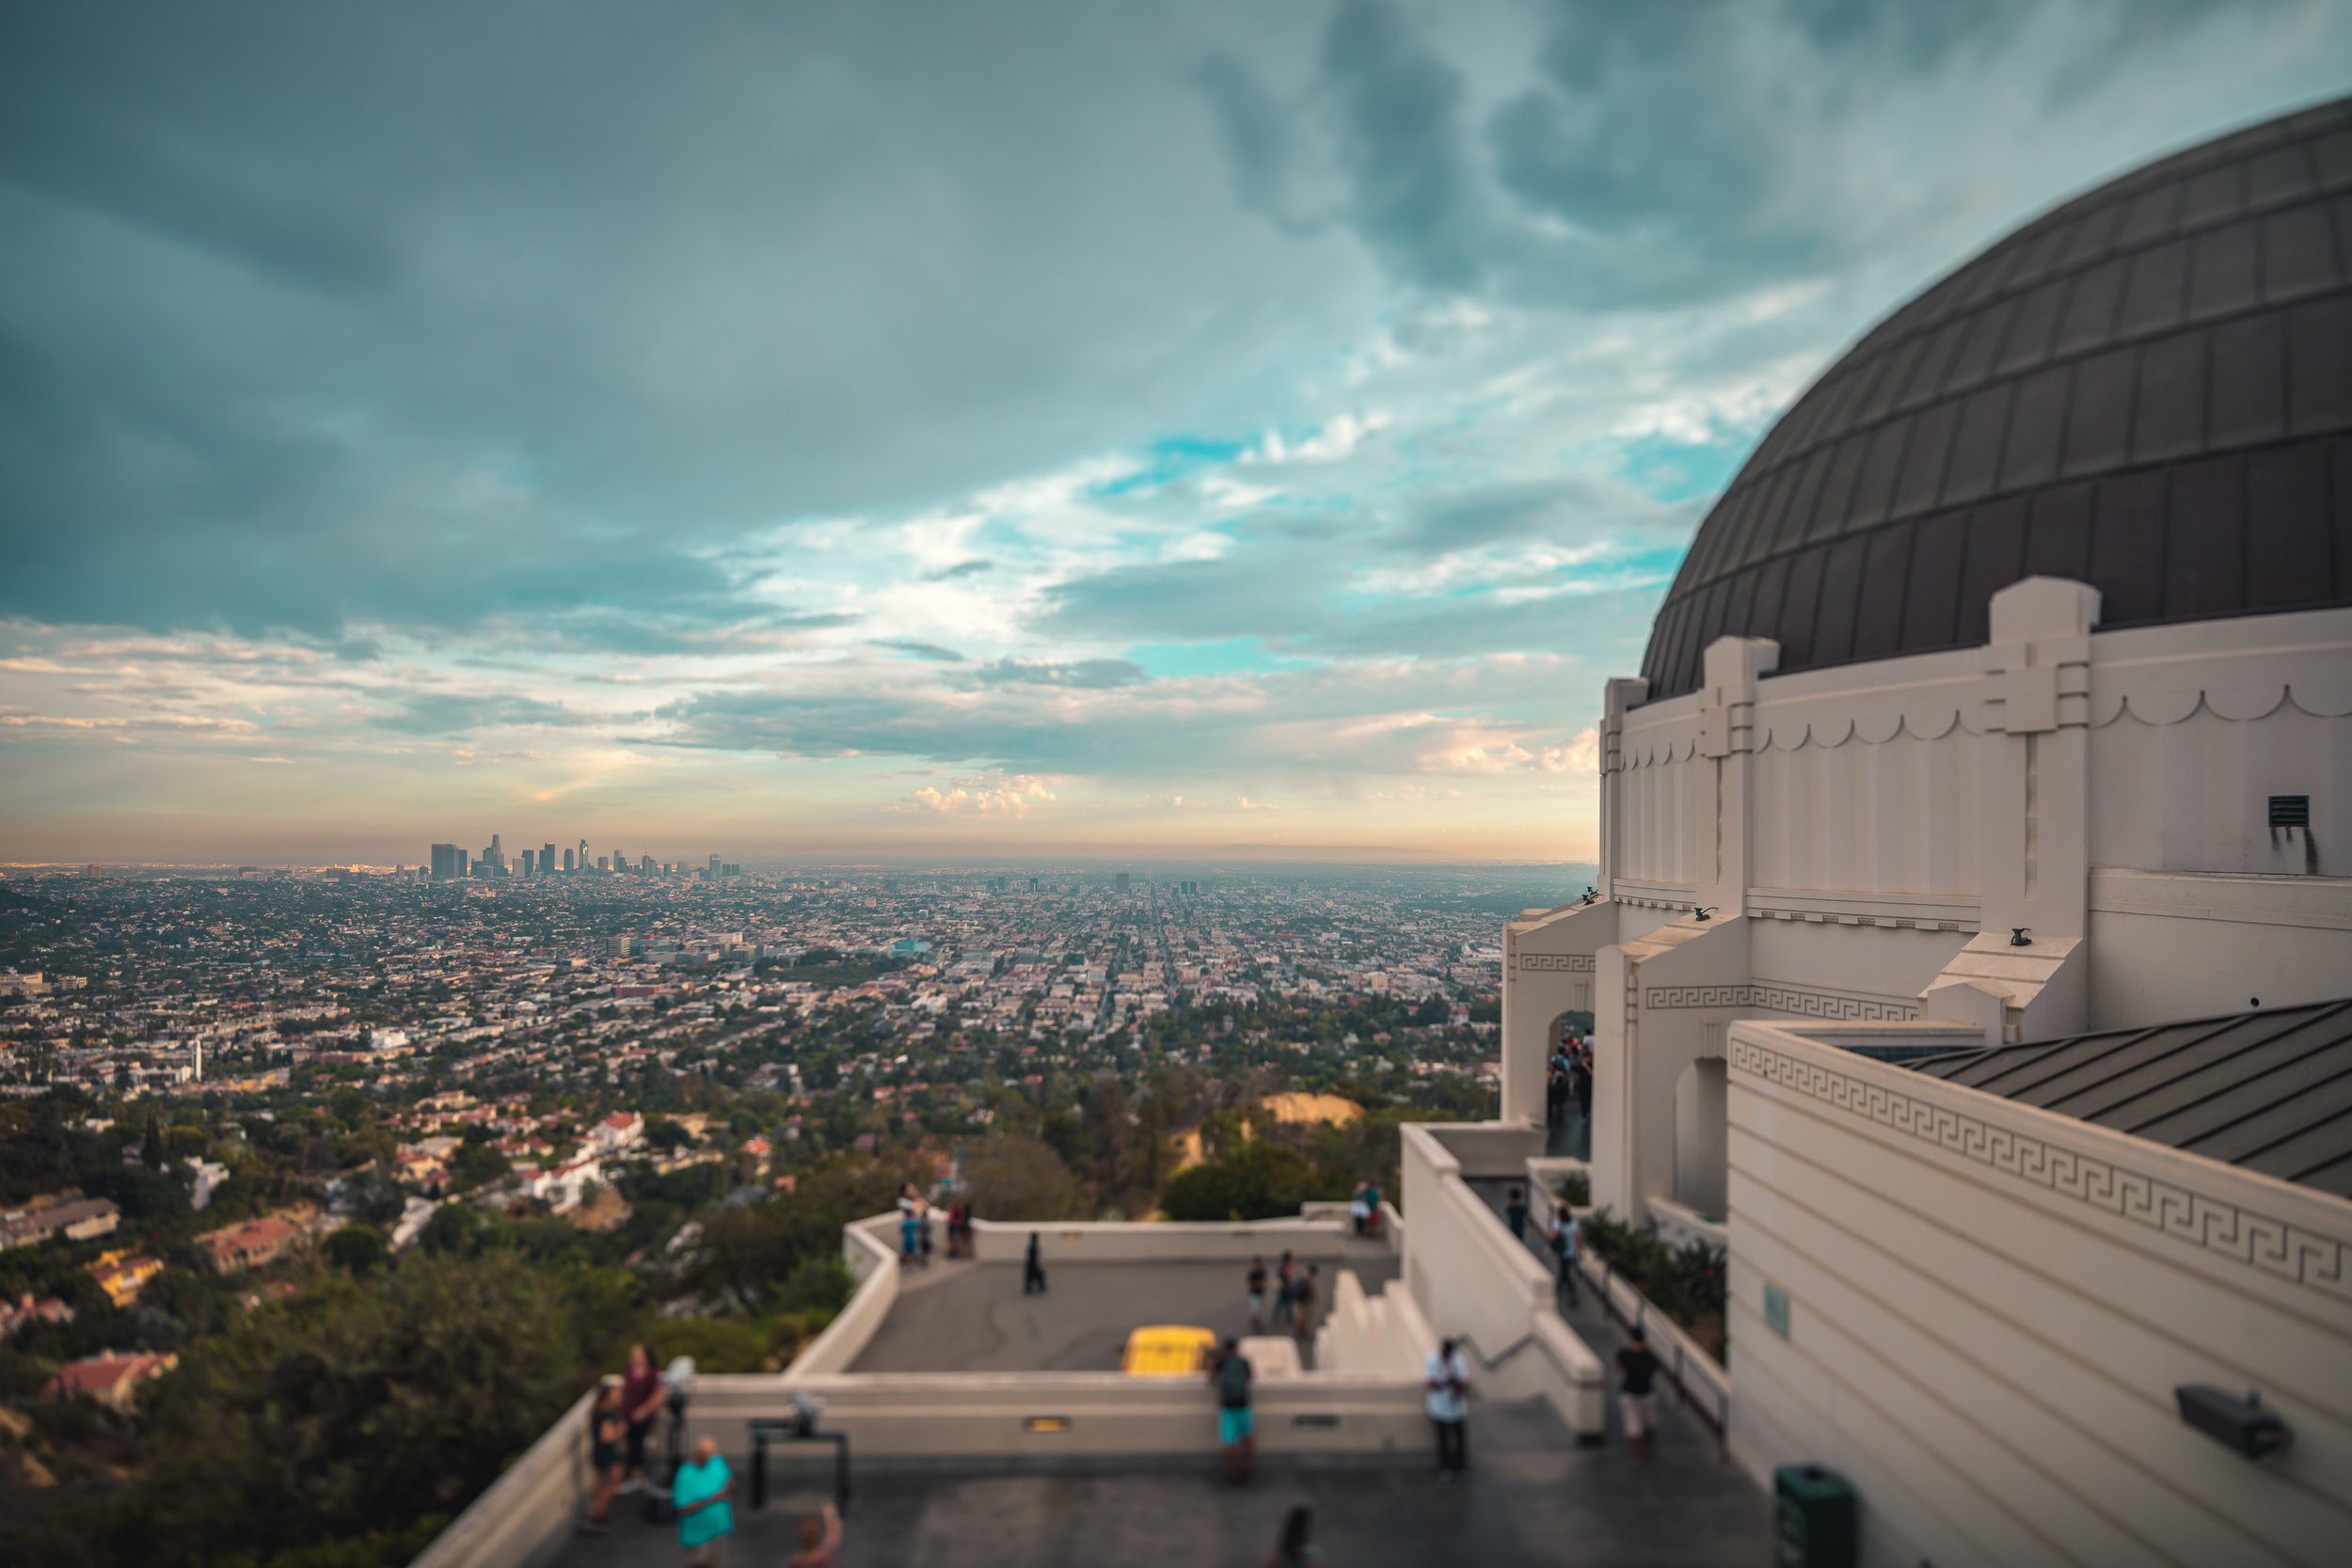 griffith_observatory-0542.jpg